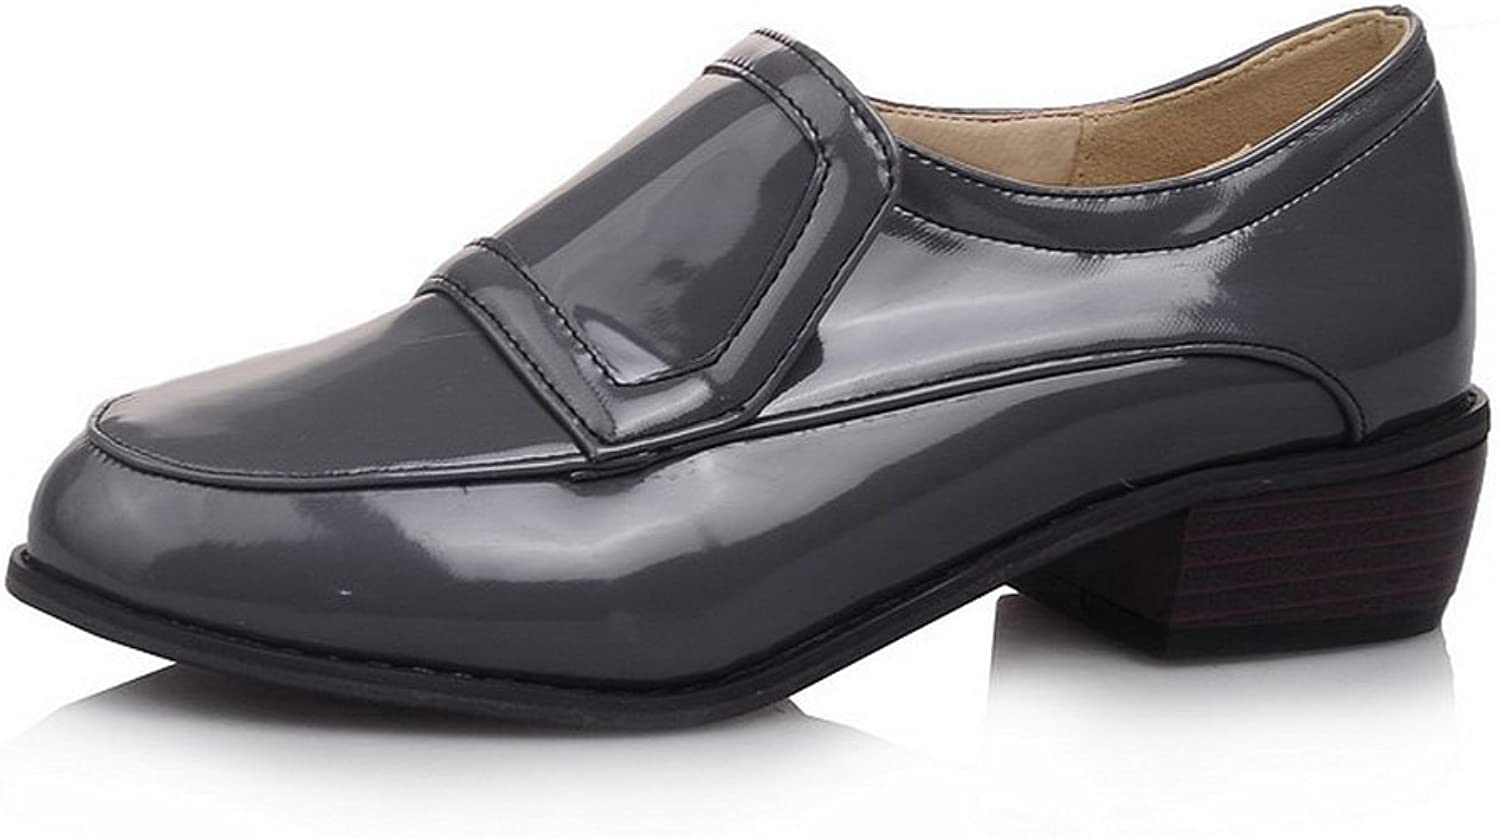 BalaMasa Ladies Square Heels Round-Toe Pull-On Patent-Leather Oxfords-shoes